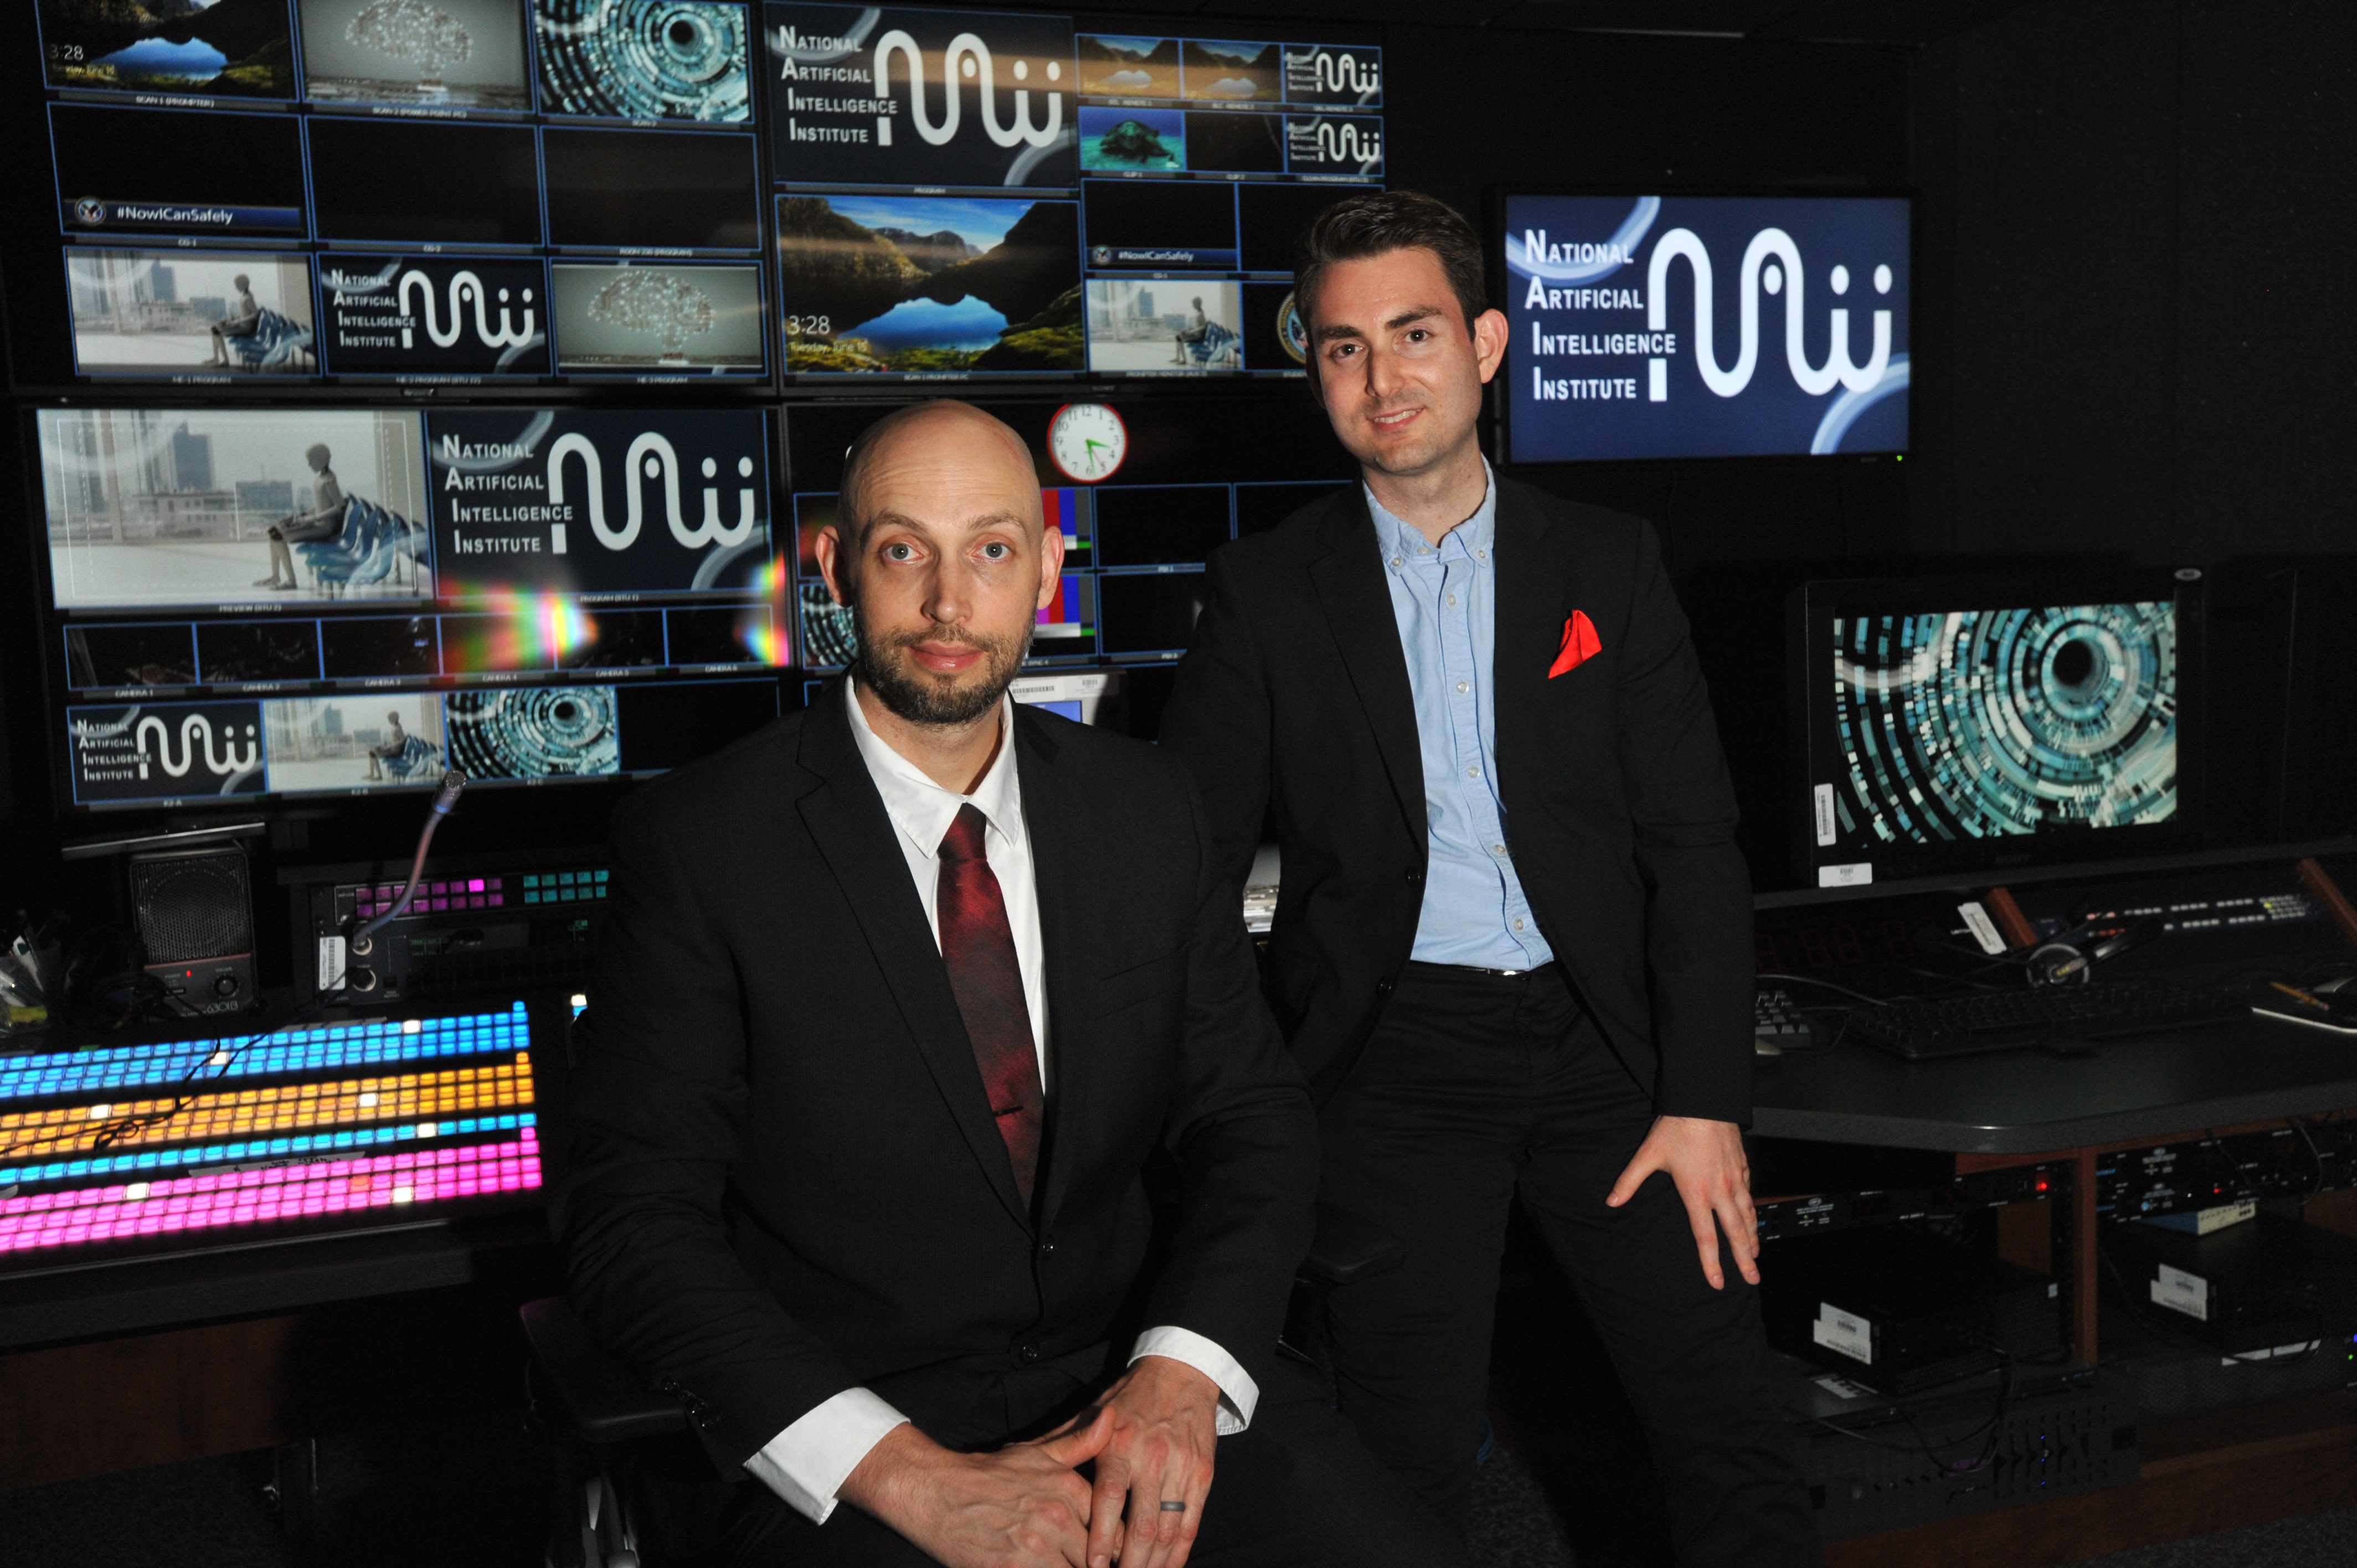 Tim Strebel (left) worked with Dr. Christos Makridis, a senior research advisor at VA's National Artificial Intelligence Institute, to create the COVID-19 prognostic tool.